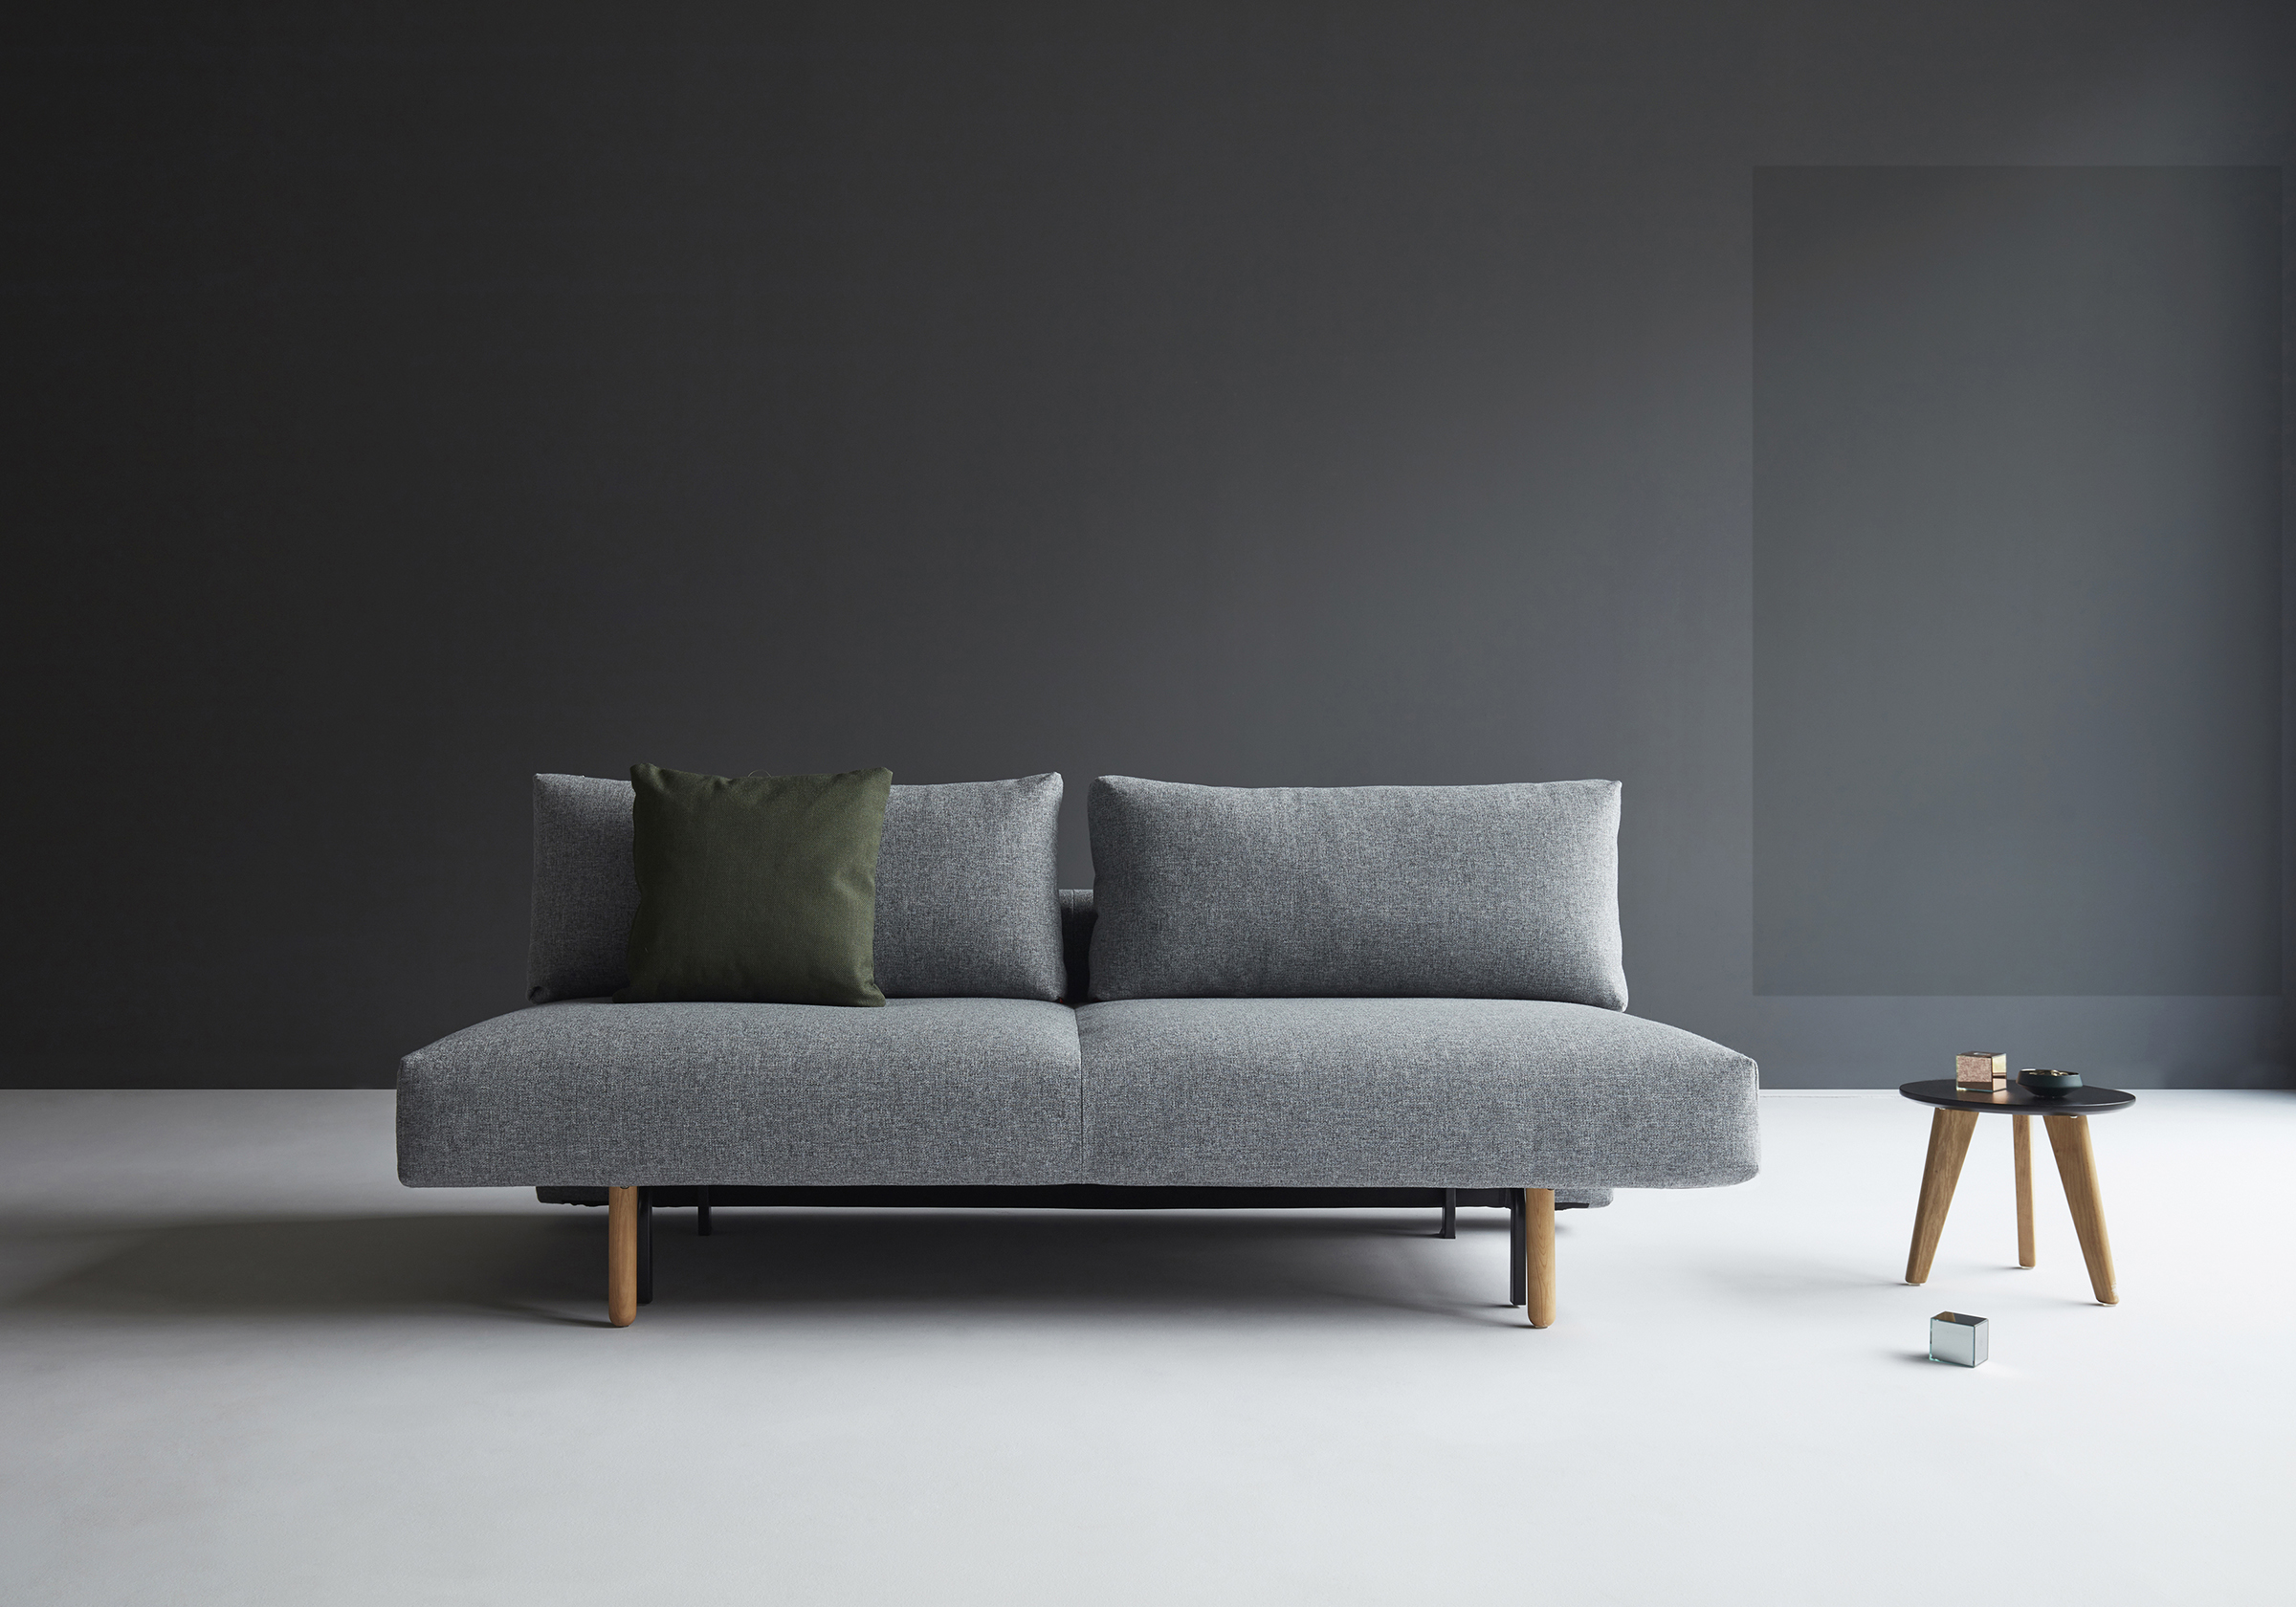 simple furniture archives cate st hill rh catesthill com